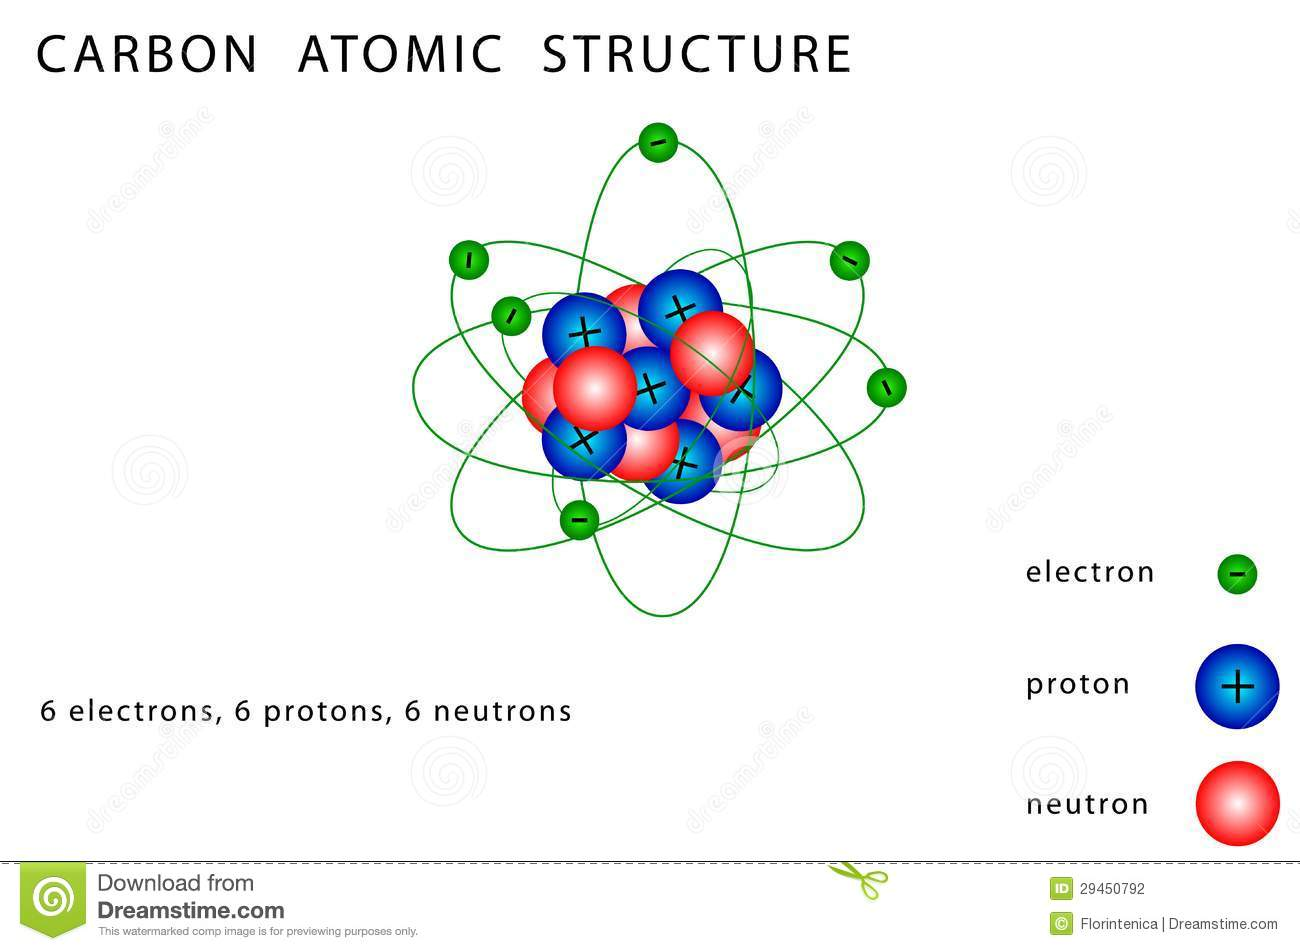 taking a look at atomic structure Look up the atomic number in the periodic table - making sure that you choose the right number if two numbers are given the atomic number will always be the smaller one this tells you the number of protons, and hence the number of electrons.